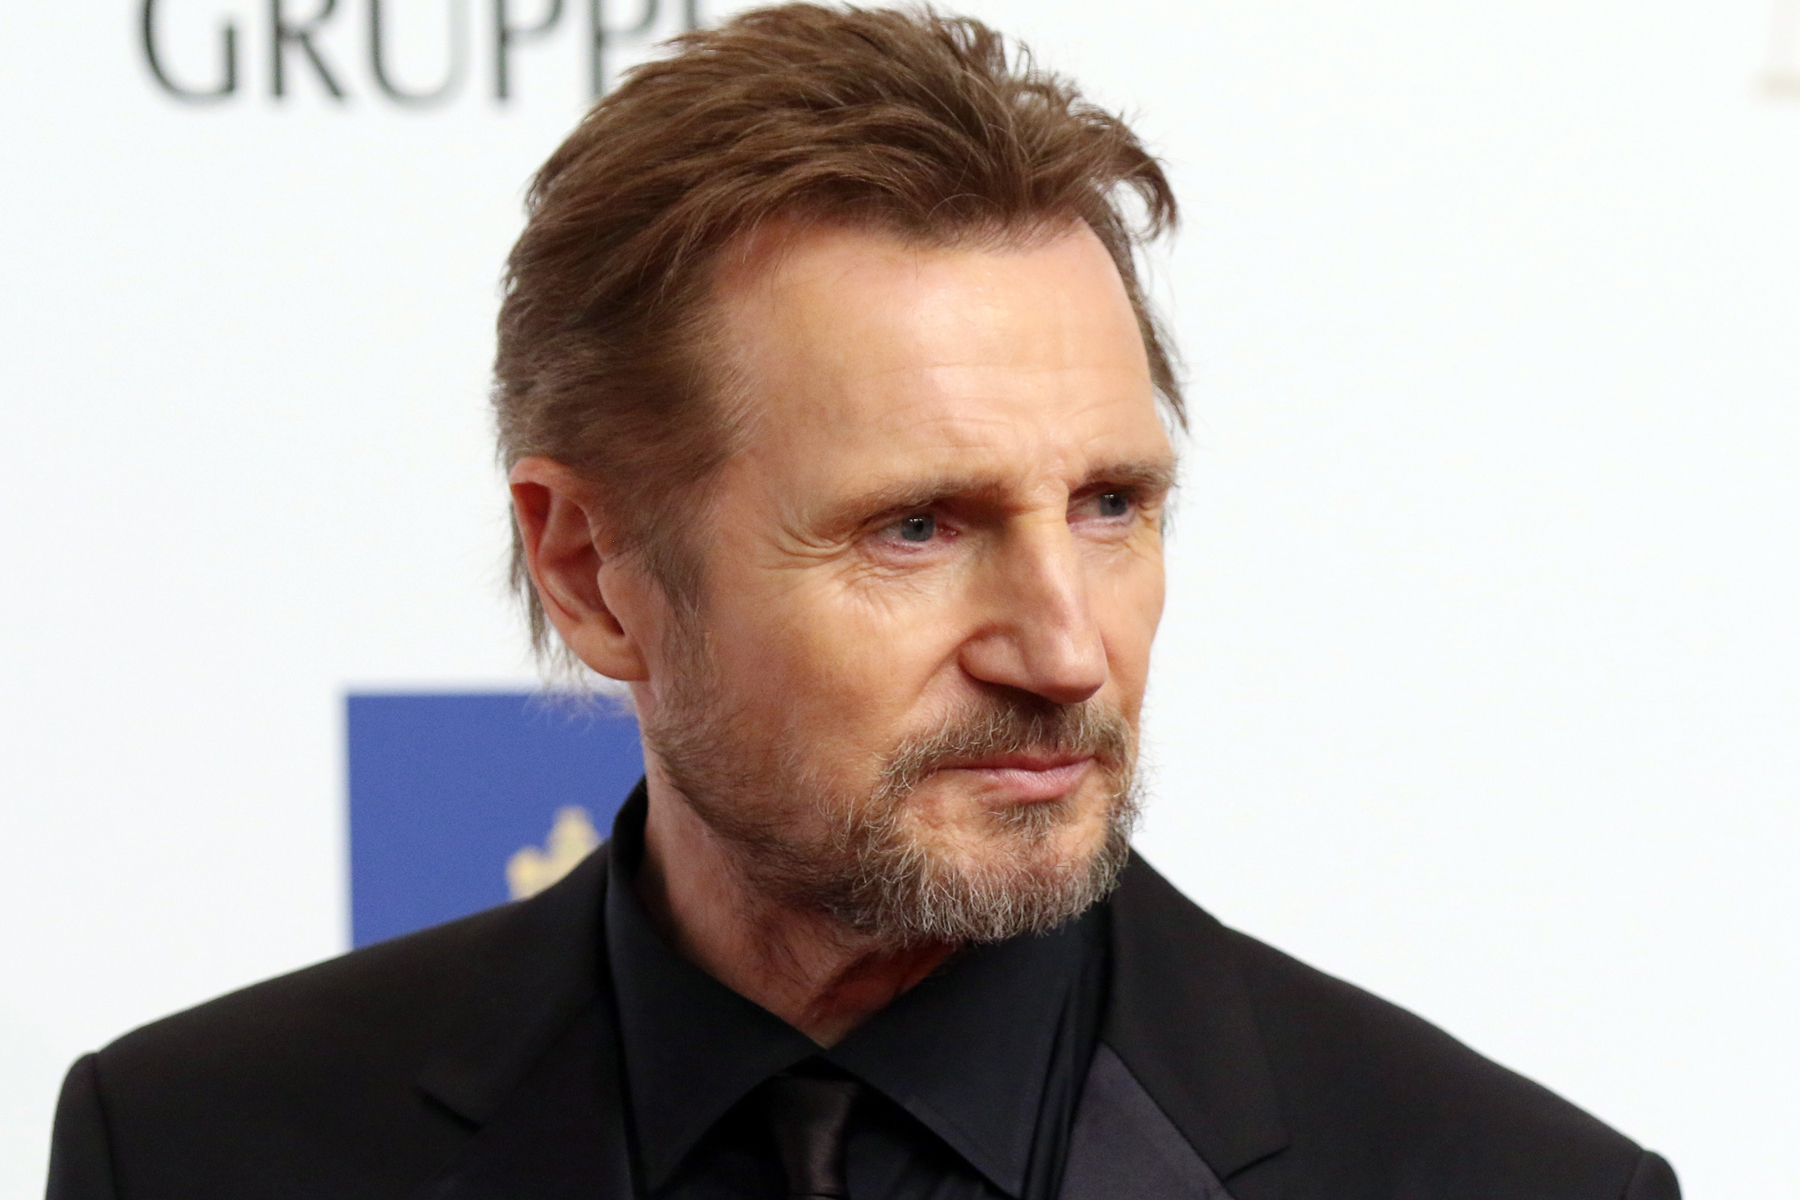 Liam Neeson at the 53rd Golden Camera Awards in Hamburg, Germany on February 22nd 2018